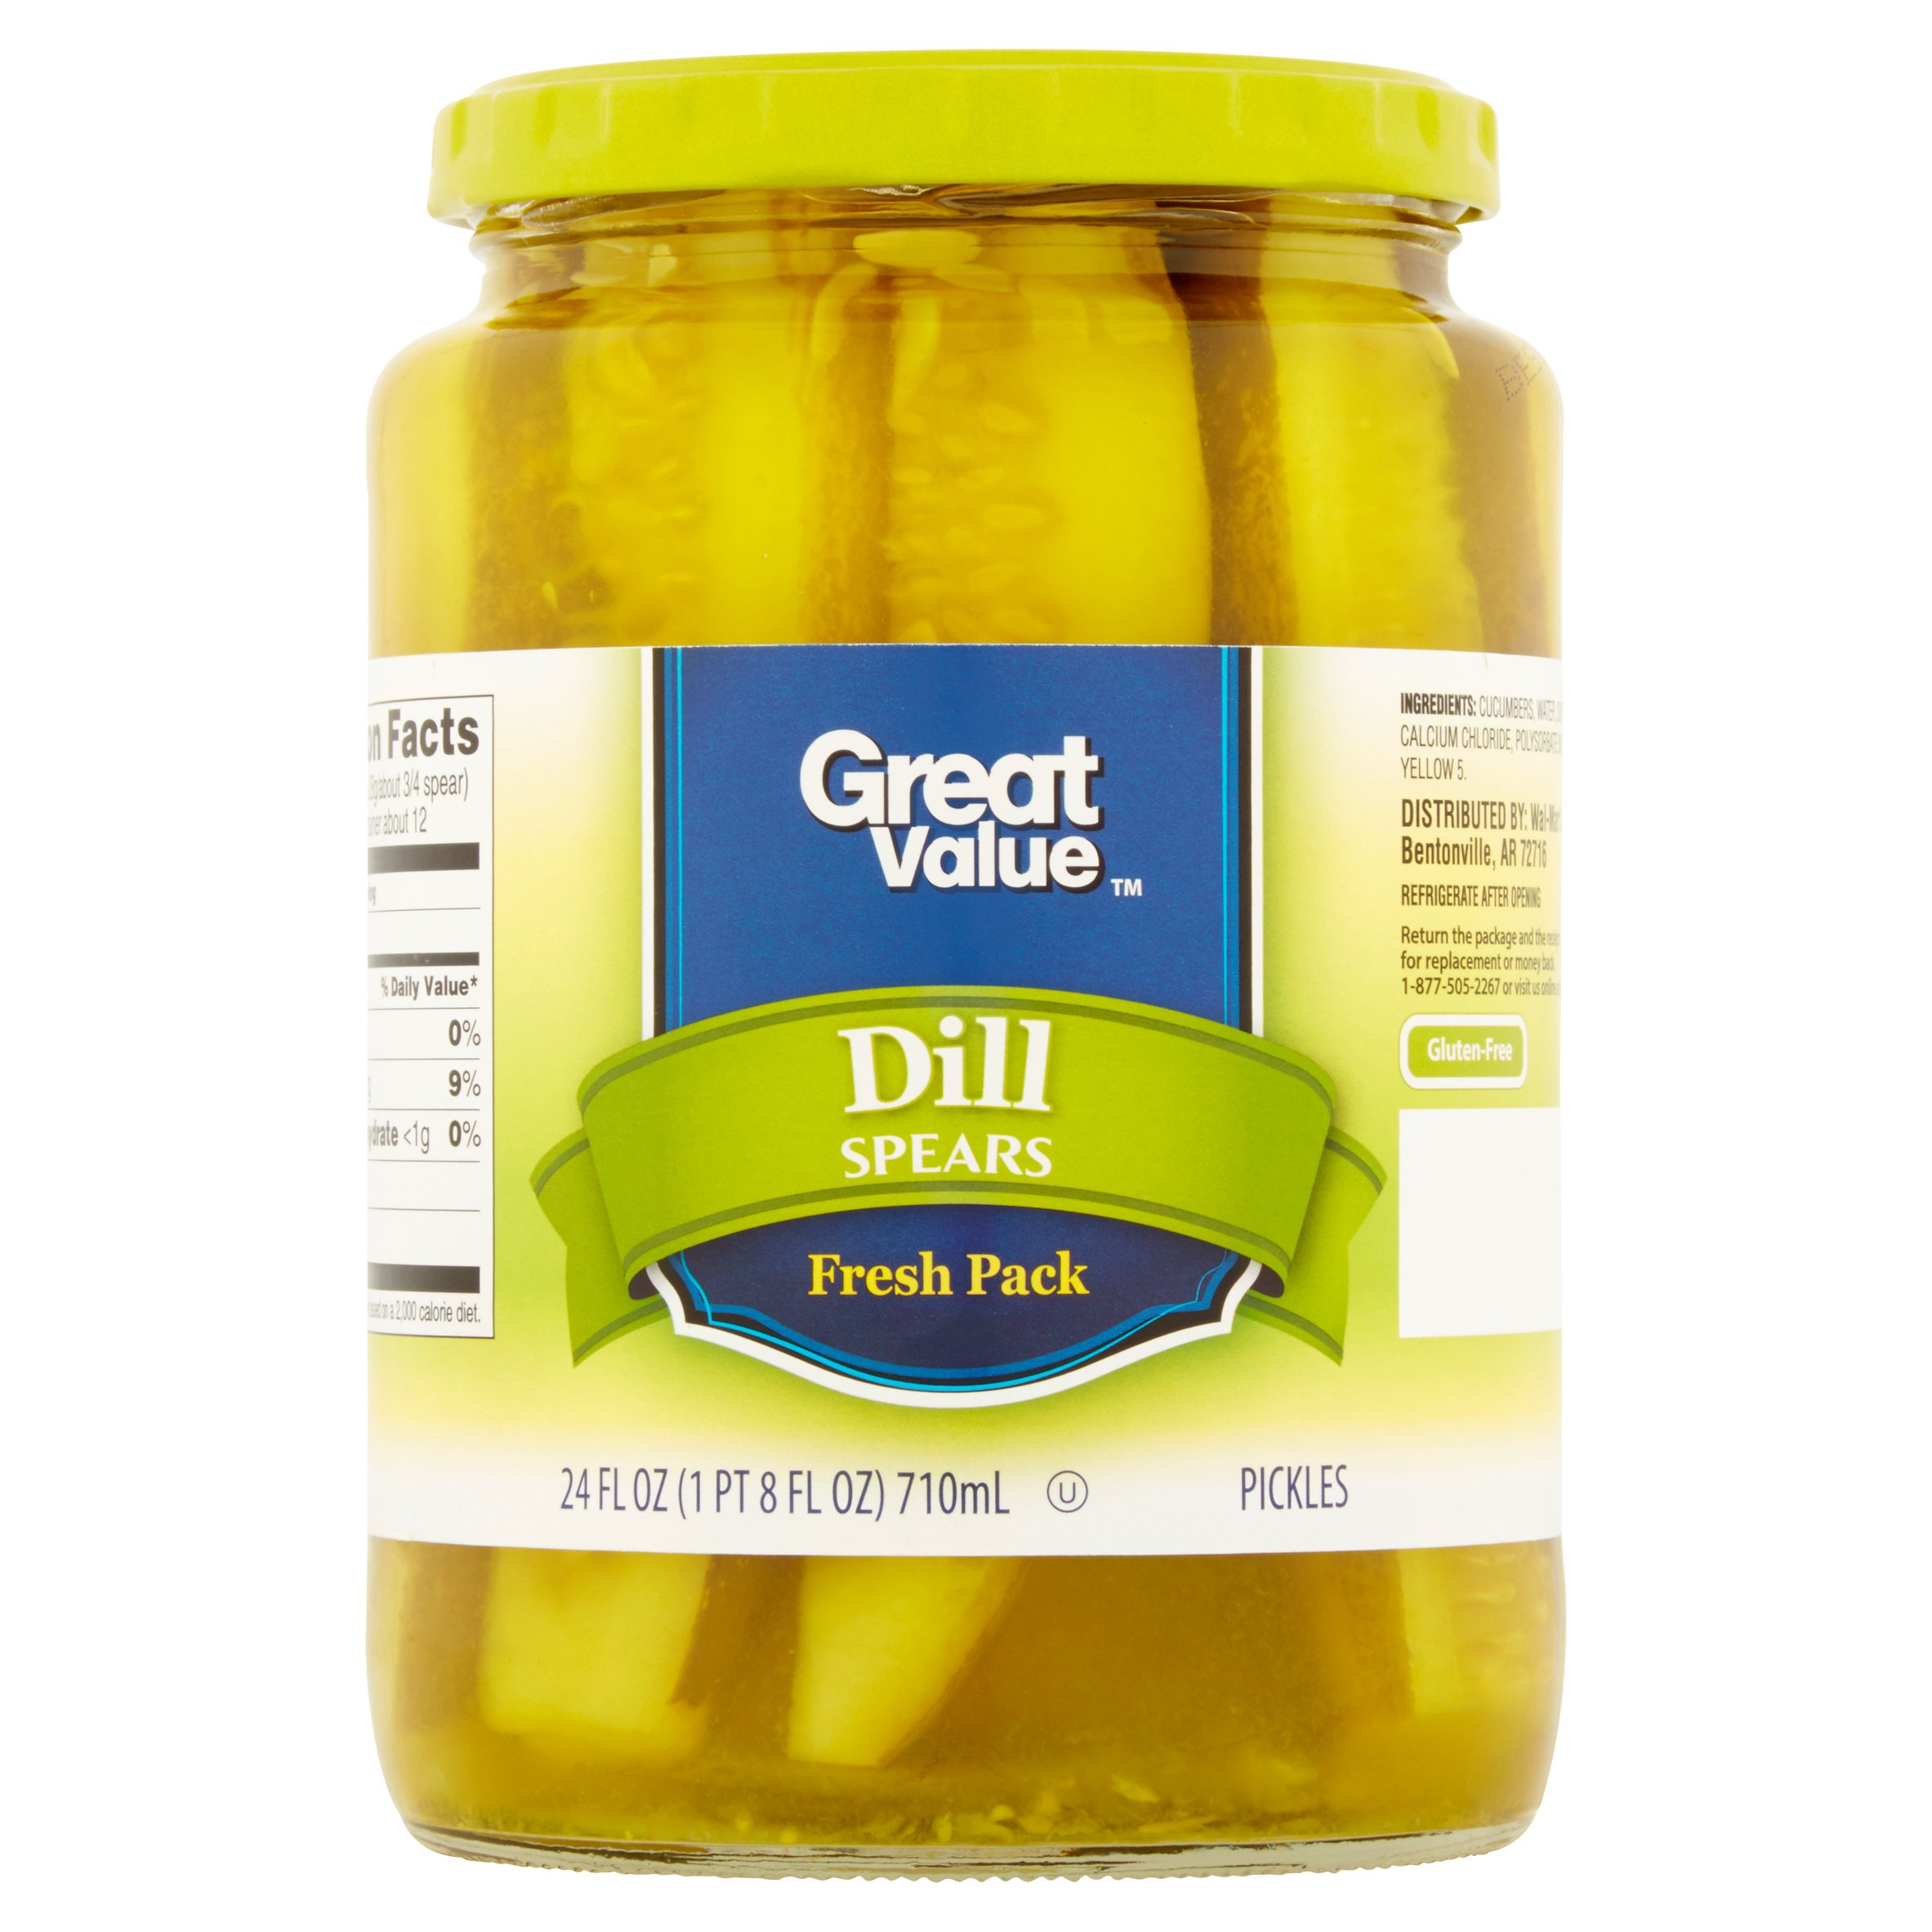 Great Value Dill Spears Pickles, 24 oz by Wal-Mart Stores, Inc.